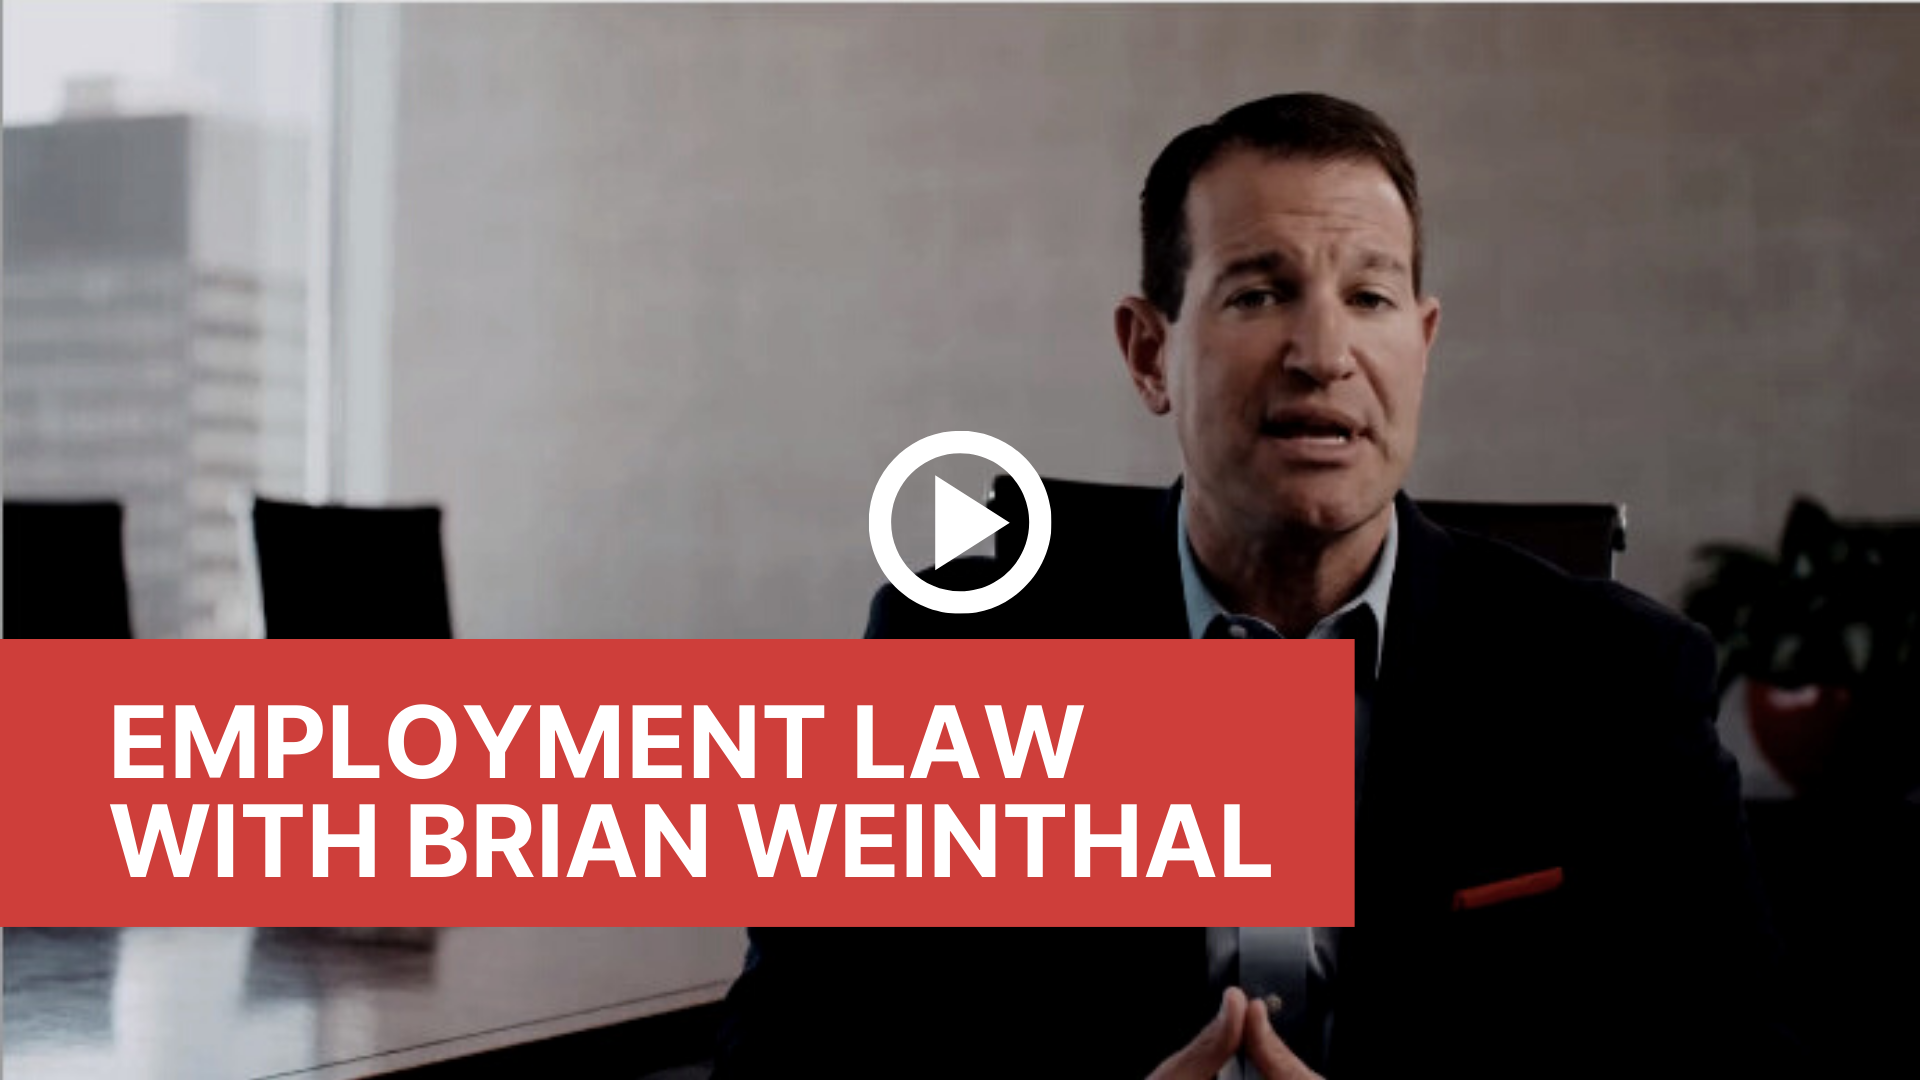 employment law with brian weinthal